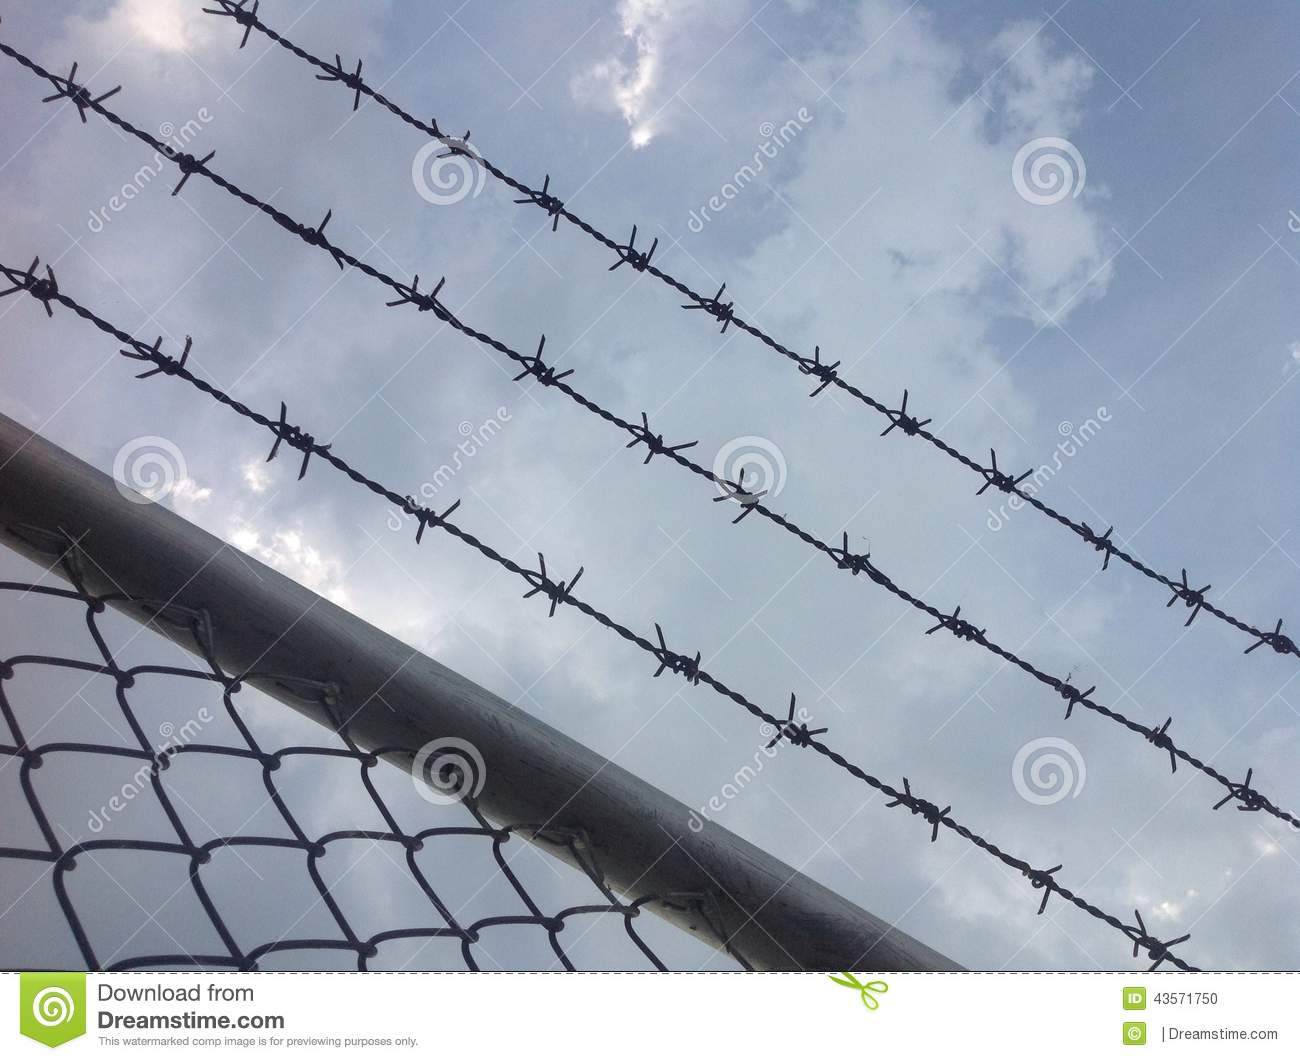 Hurdle or barb wire and blue sky